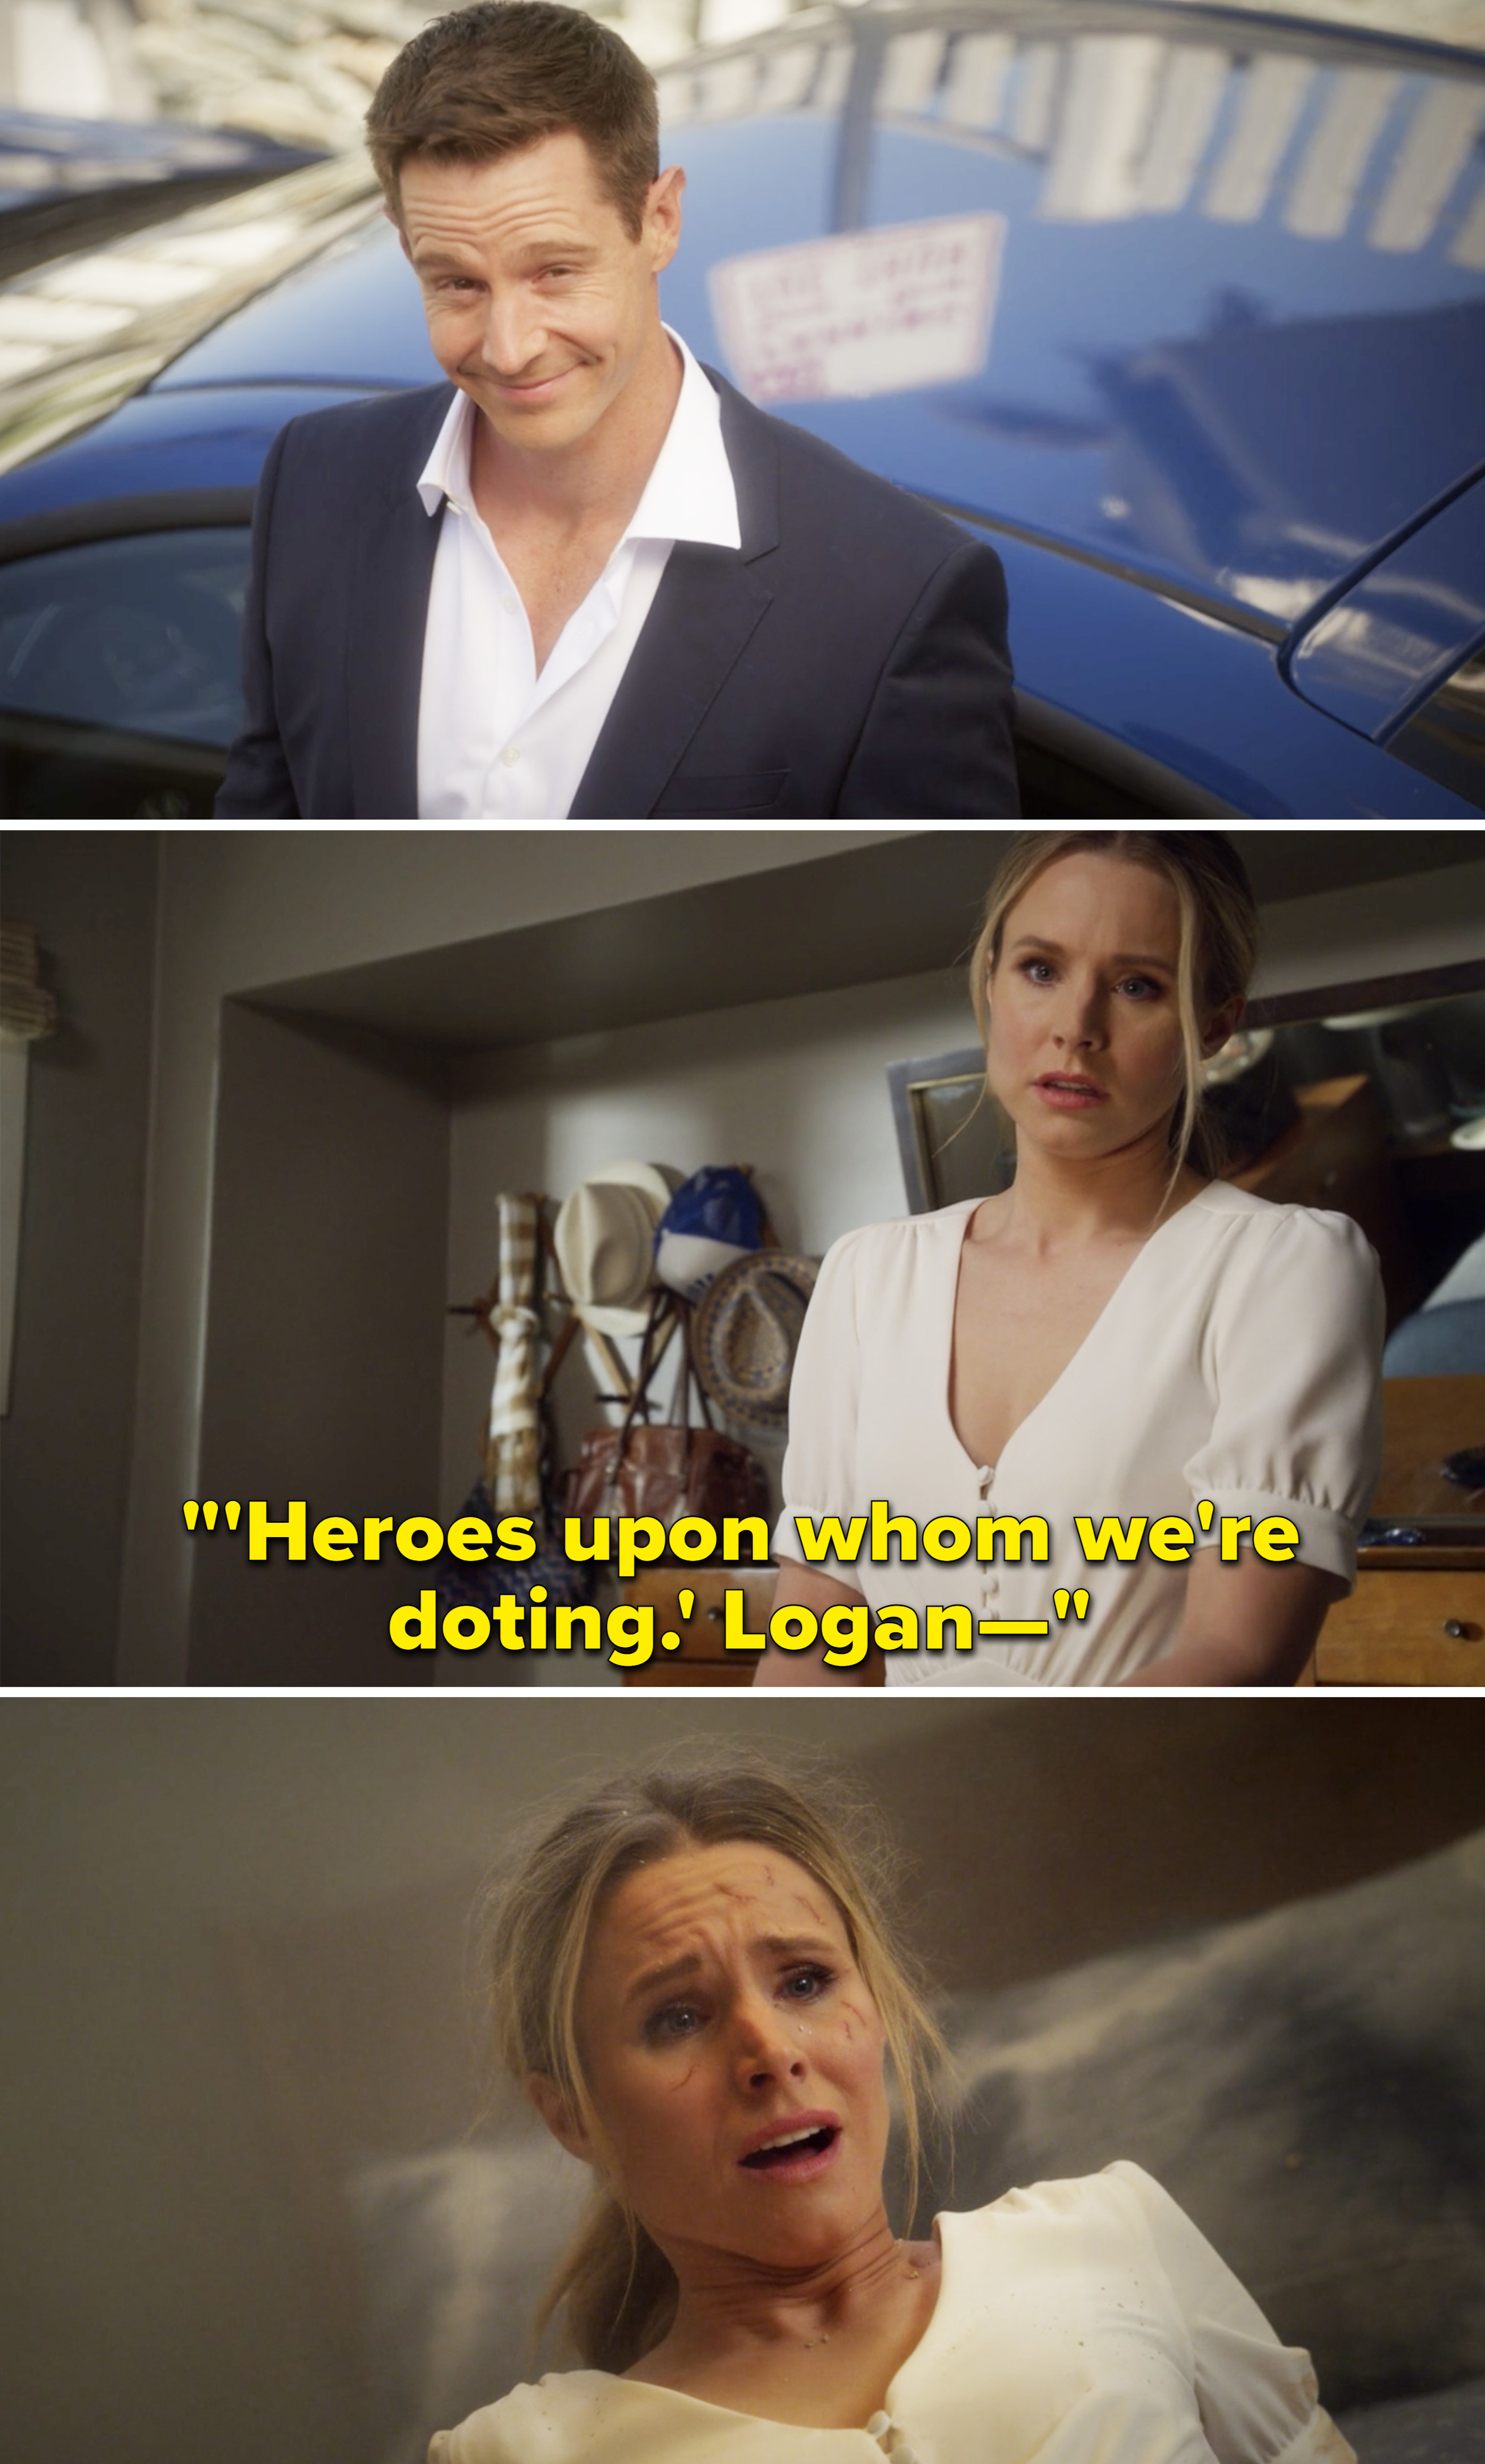 """Veronica saying, """"Heroes upon whom we're doting. Logan"""" before looking shocked after an explosion"""